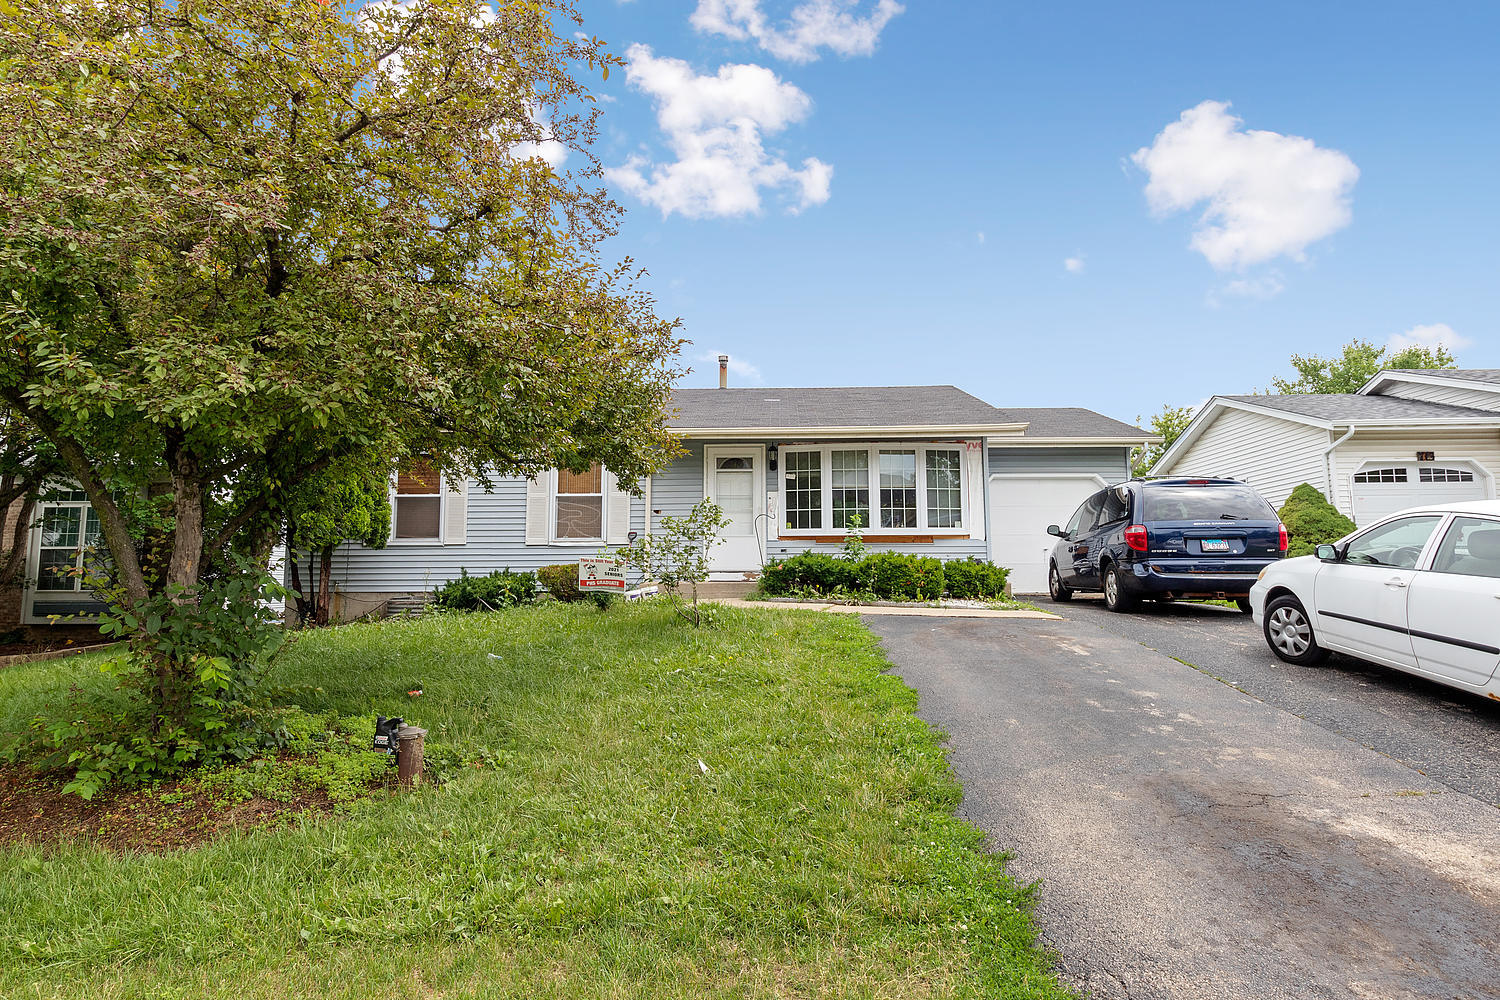 BEAUTIFUL RANCH HOUSE WITH BIG LOT. ENJOY THIS 3 BEDROOMS, 1.5 BATHS WITH EXTRA ROOM IN BASEMENT. HUGE FENCED BACKYARD. ALL APPLIANCES STAY. EXCELLENT LOCATION. NEAR TO SHOPPING, PARKS, METRA, YMCA, SUPERMARKET & PALATINE DOWNTOWN. WON'T LAST. THIS IS A SHORTSALE ALLOWED TIME FOR BANK APPROVAL.